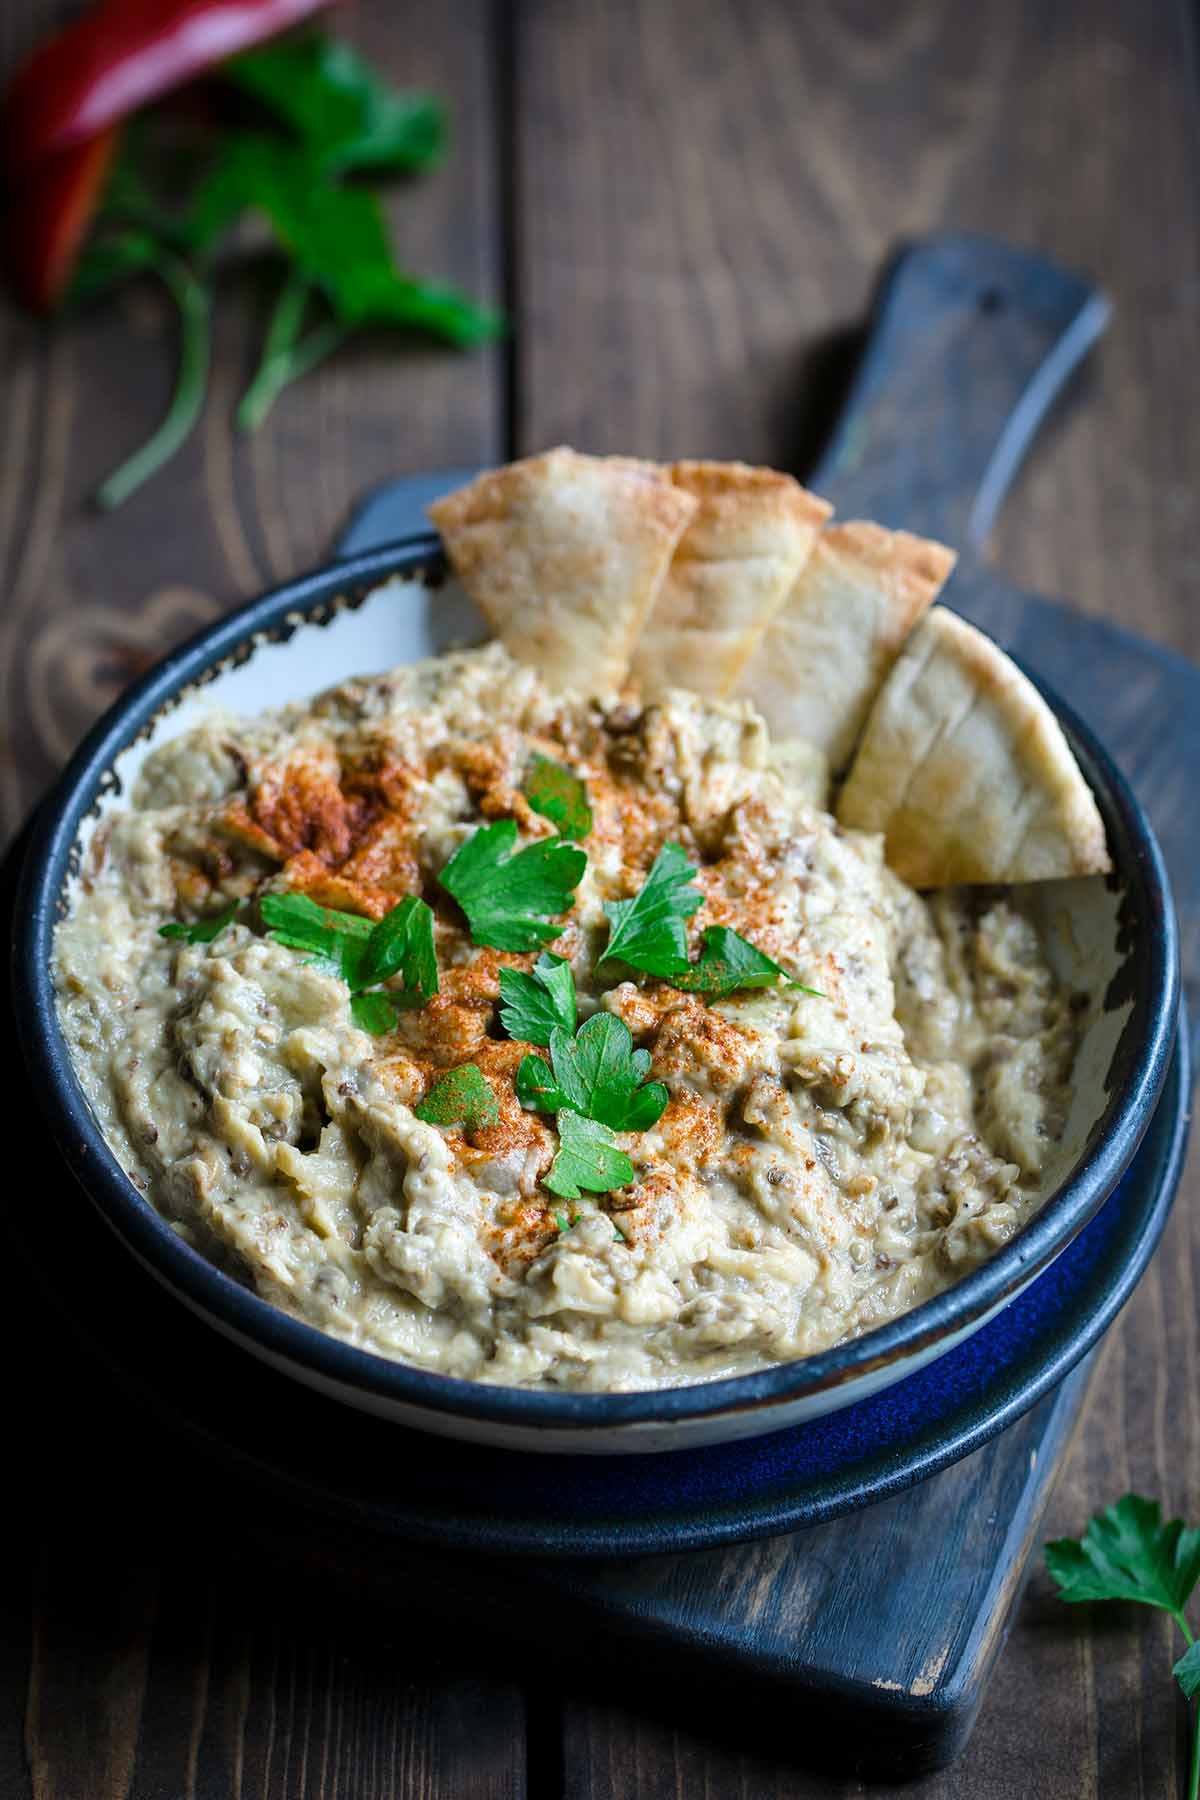 Baba Ganoush in bowl with pita chips on the side